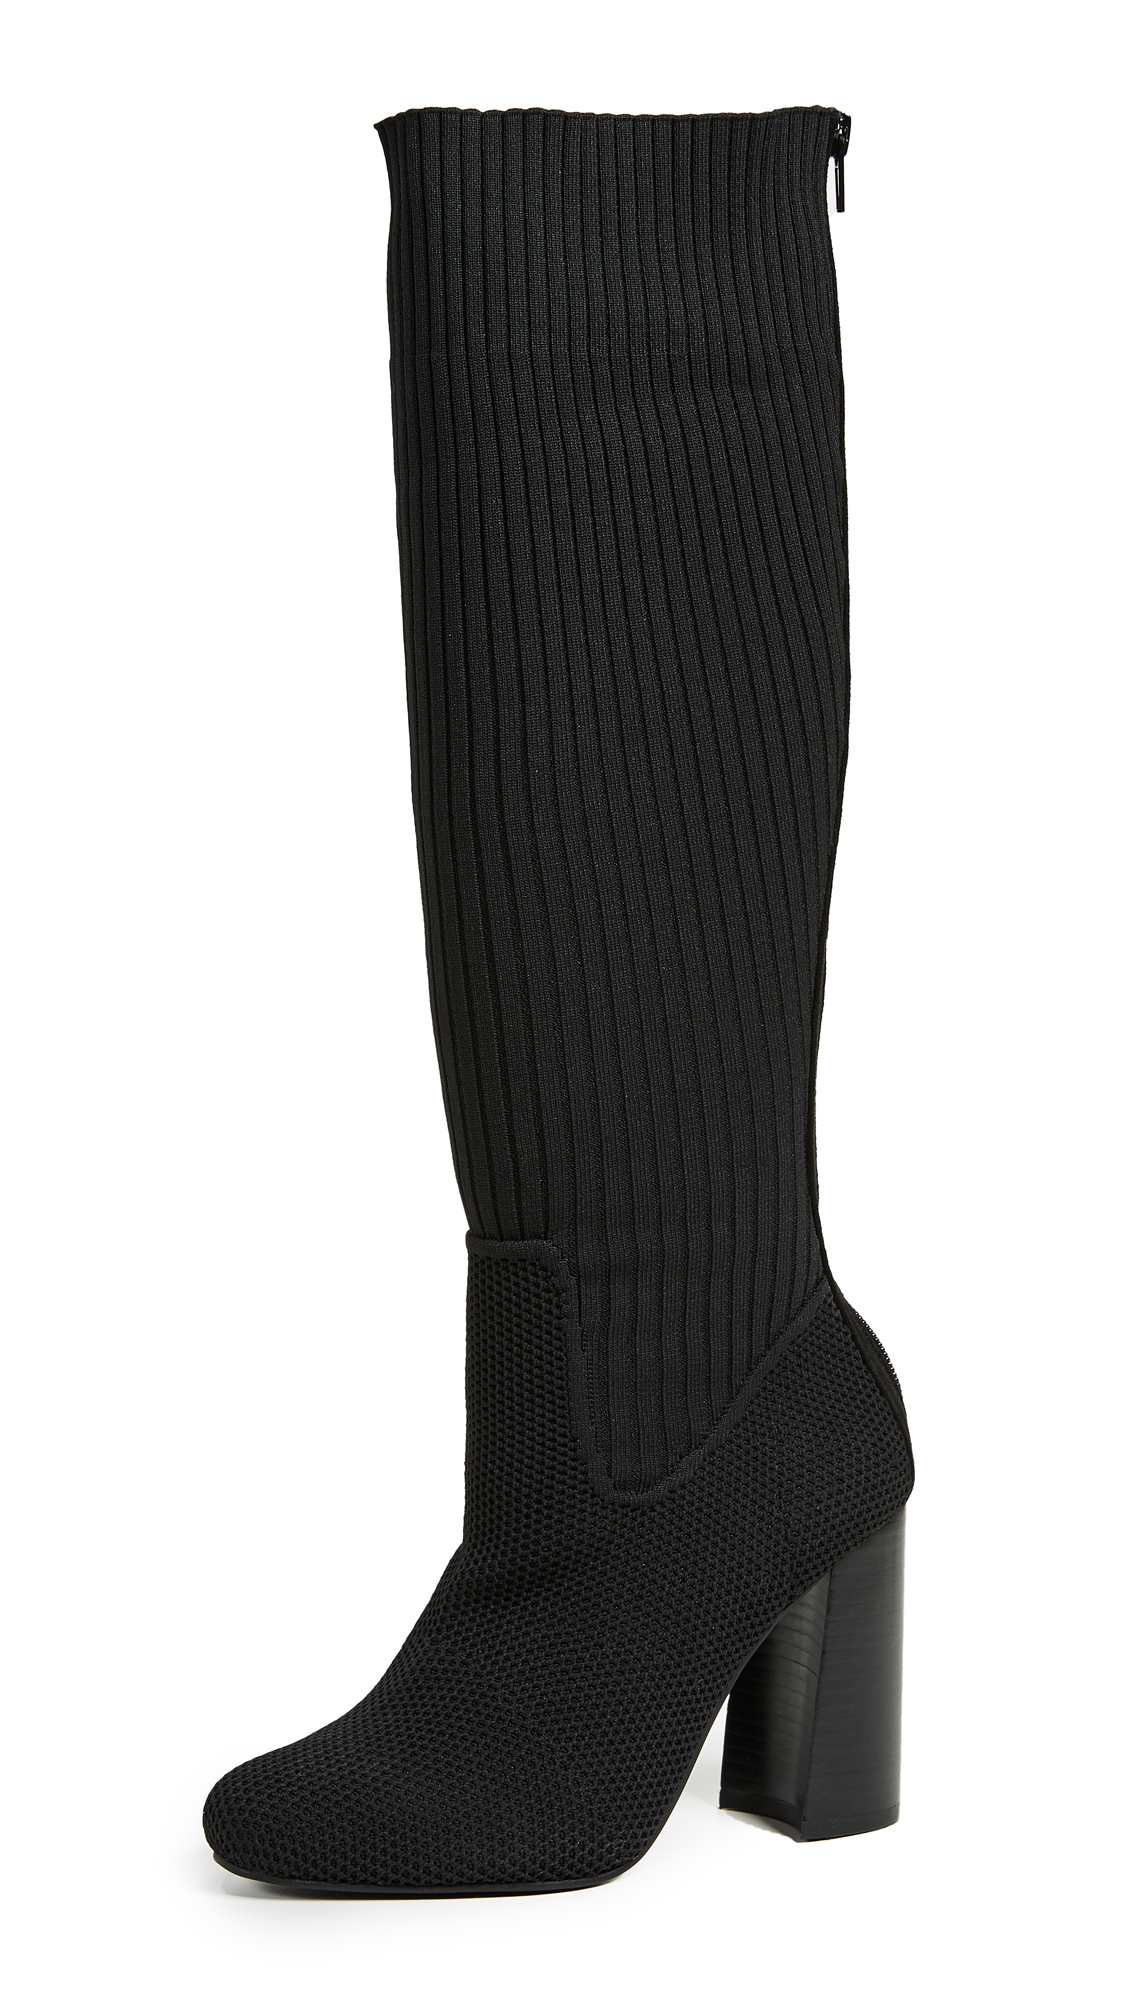 Jeffrey Campbell Expert Tall Boots - Black Combo